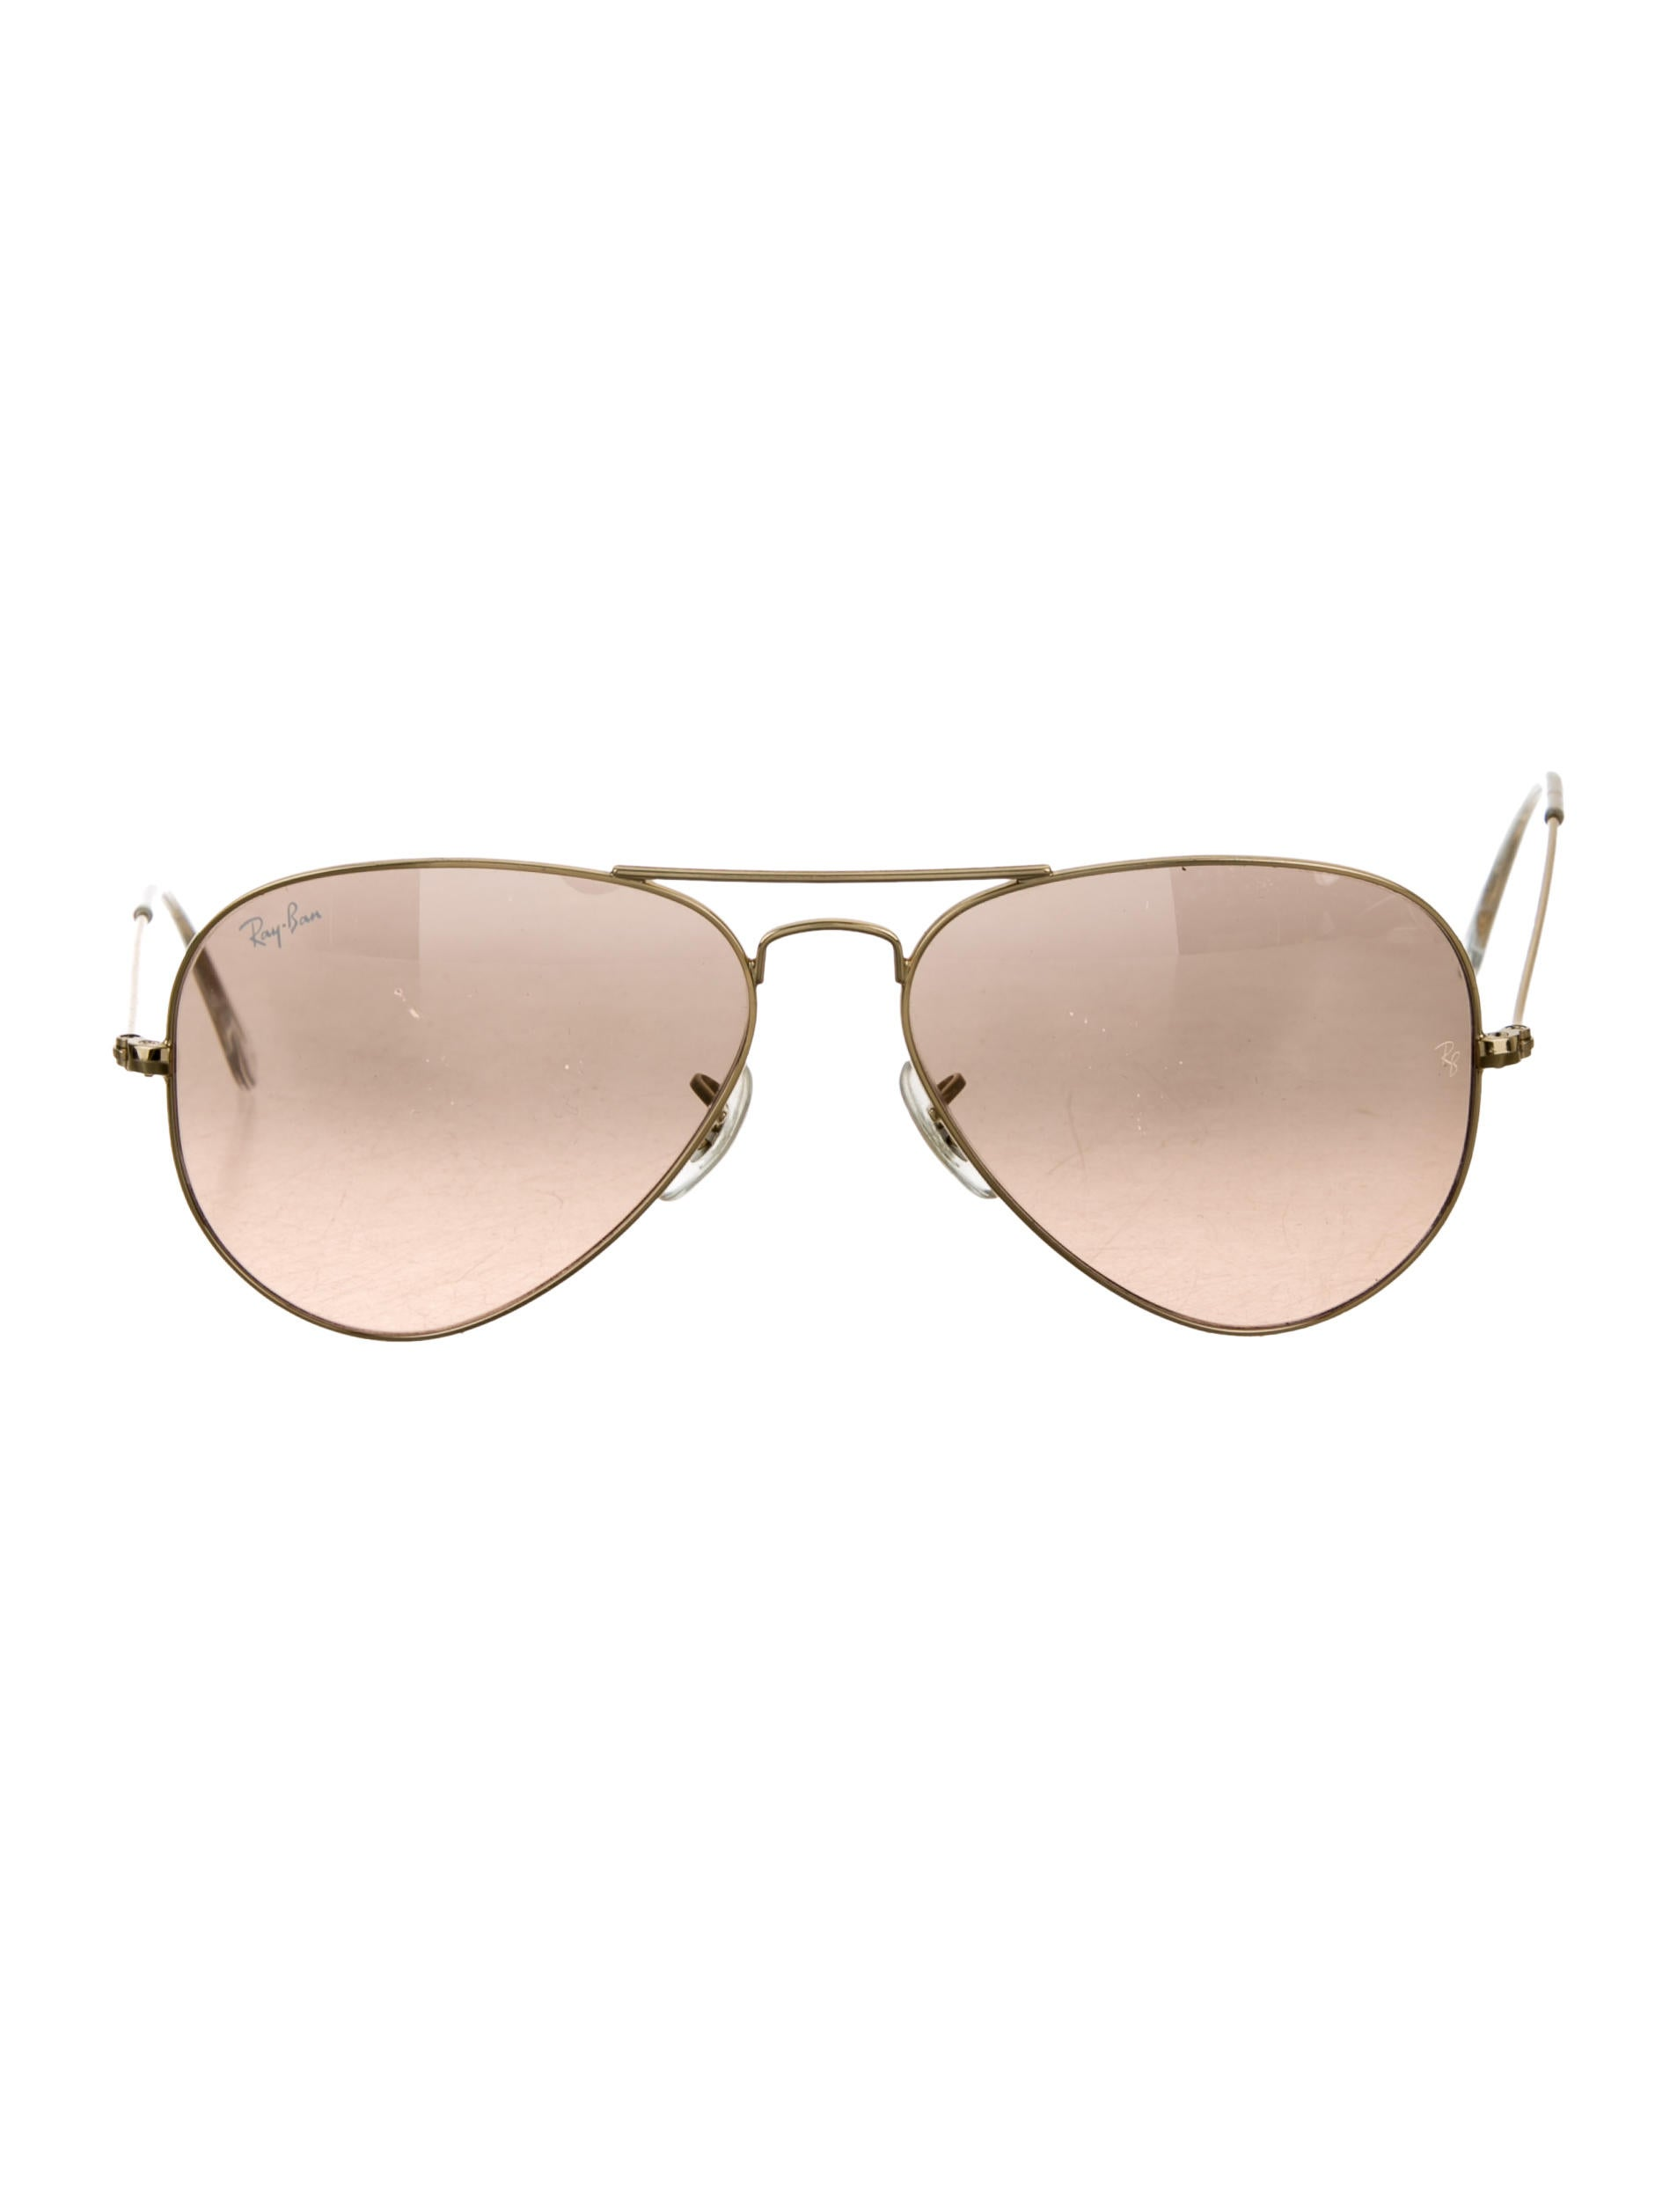 Polarized metallic aviators with mirrored lenses? Yes, and that's a whole lot for under $ We're telling you, these sunglasses are a staple for a reason/5(35).